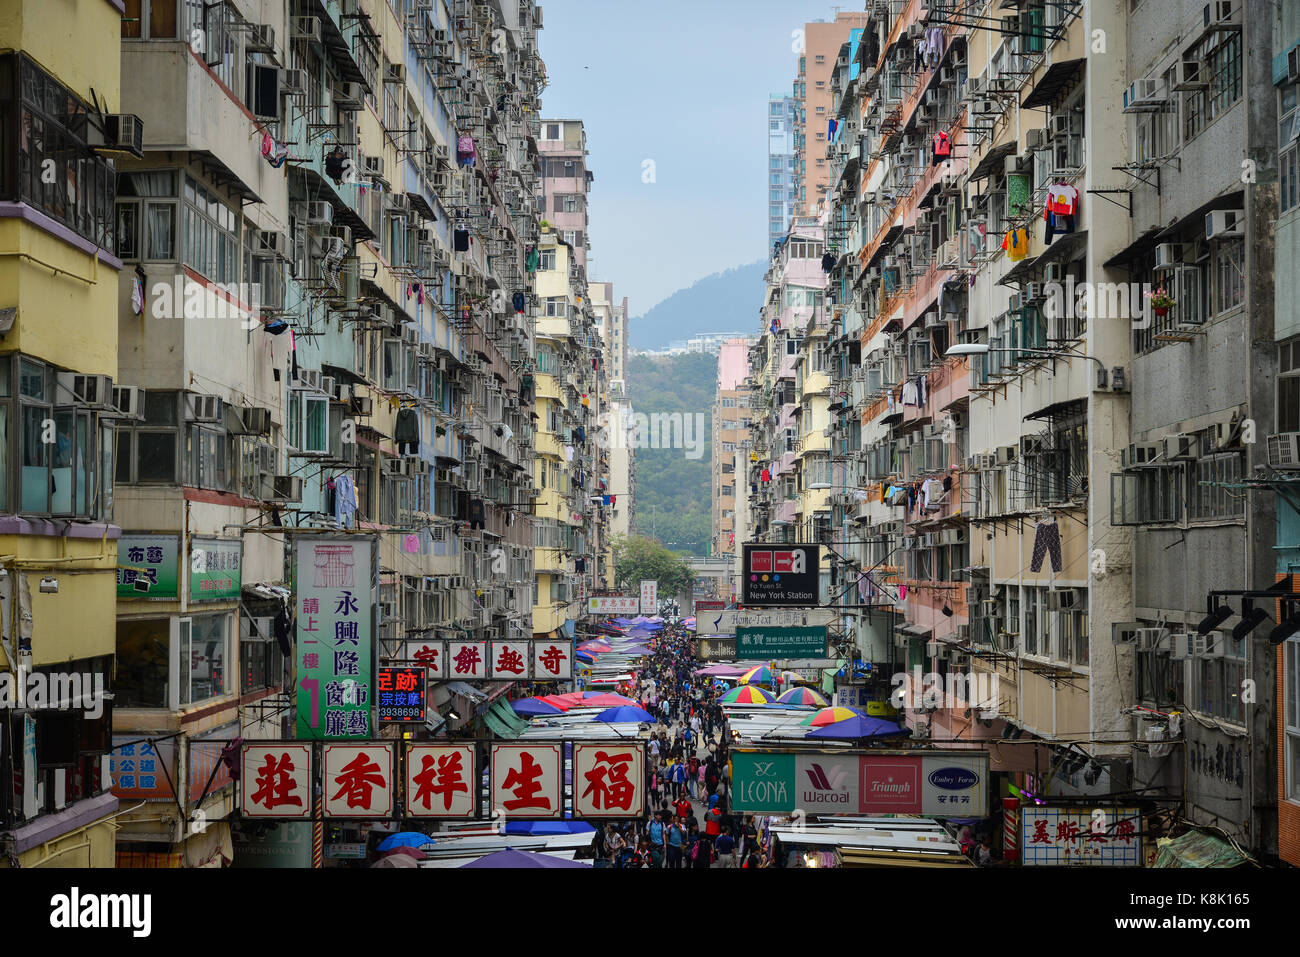 Hong Kong - Mar 29, 2017. Many old buildings at Fa Yuen street market in Hong Kong. The area is popular with tourists - Stock Image